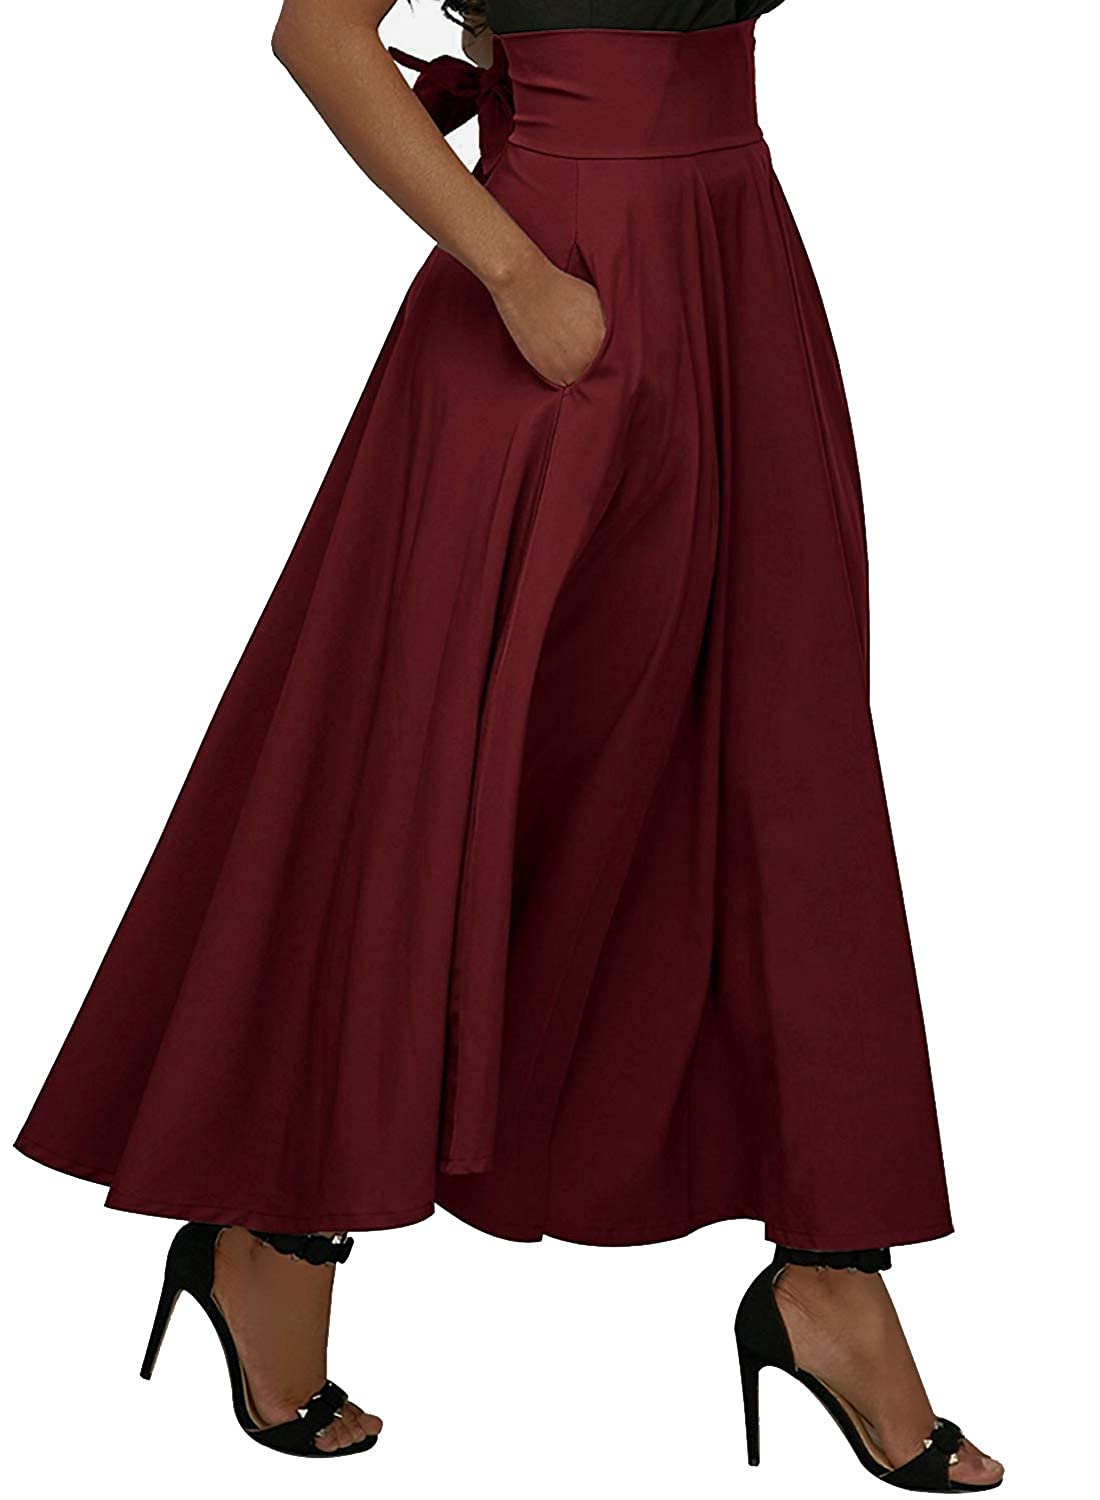 Calvin & Sally Women's Casual Flowy Dress High Waist Pleated Midi Skirt Pockets SZTDR1802